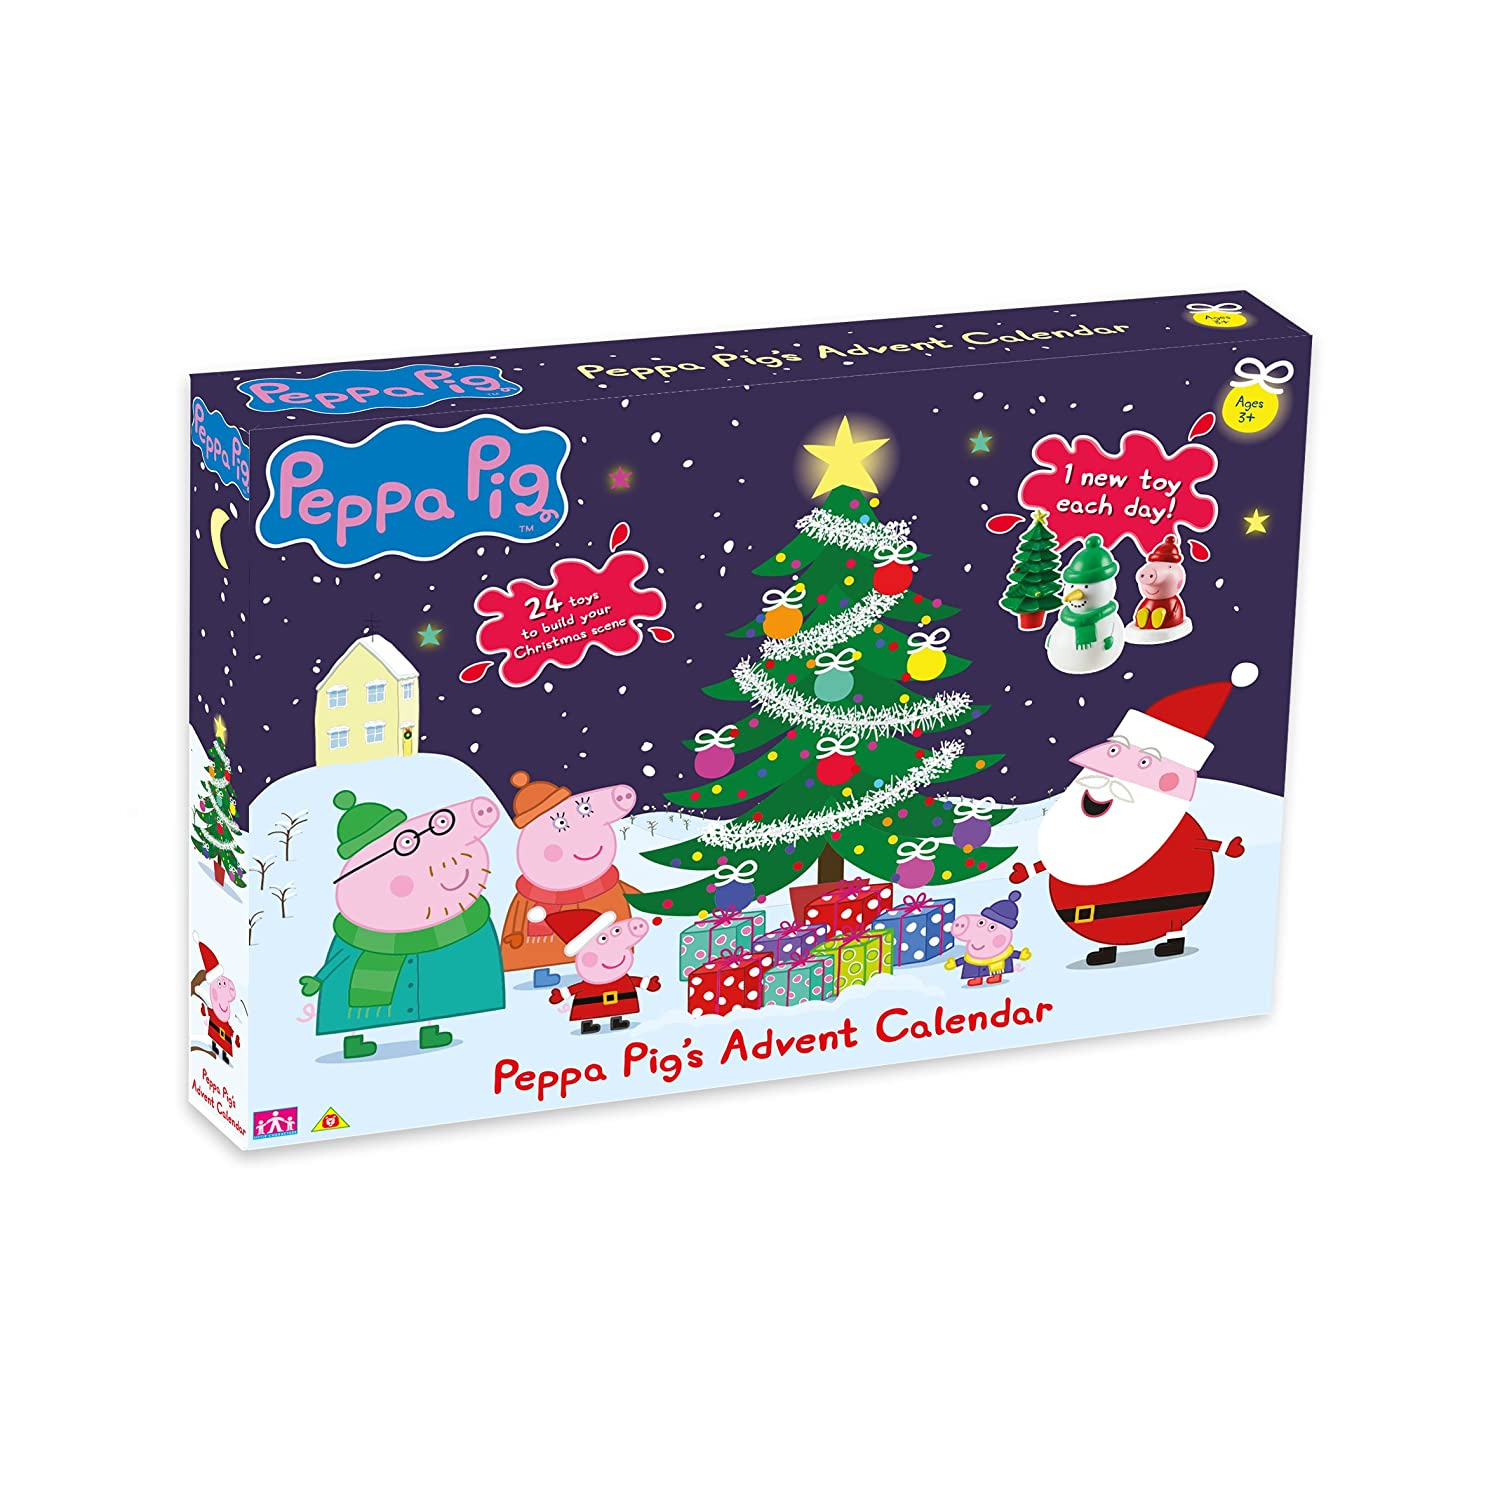 Peppa Pig Advent Calendar Character Options 06850